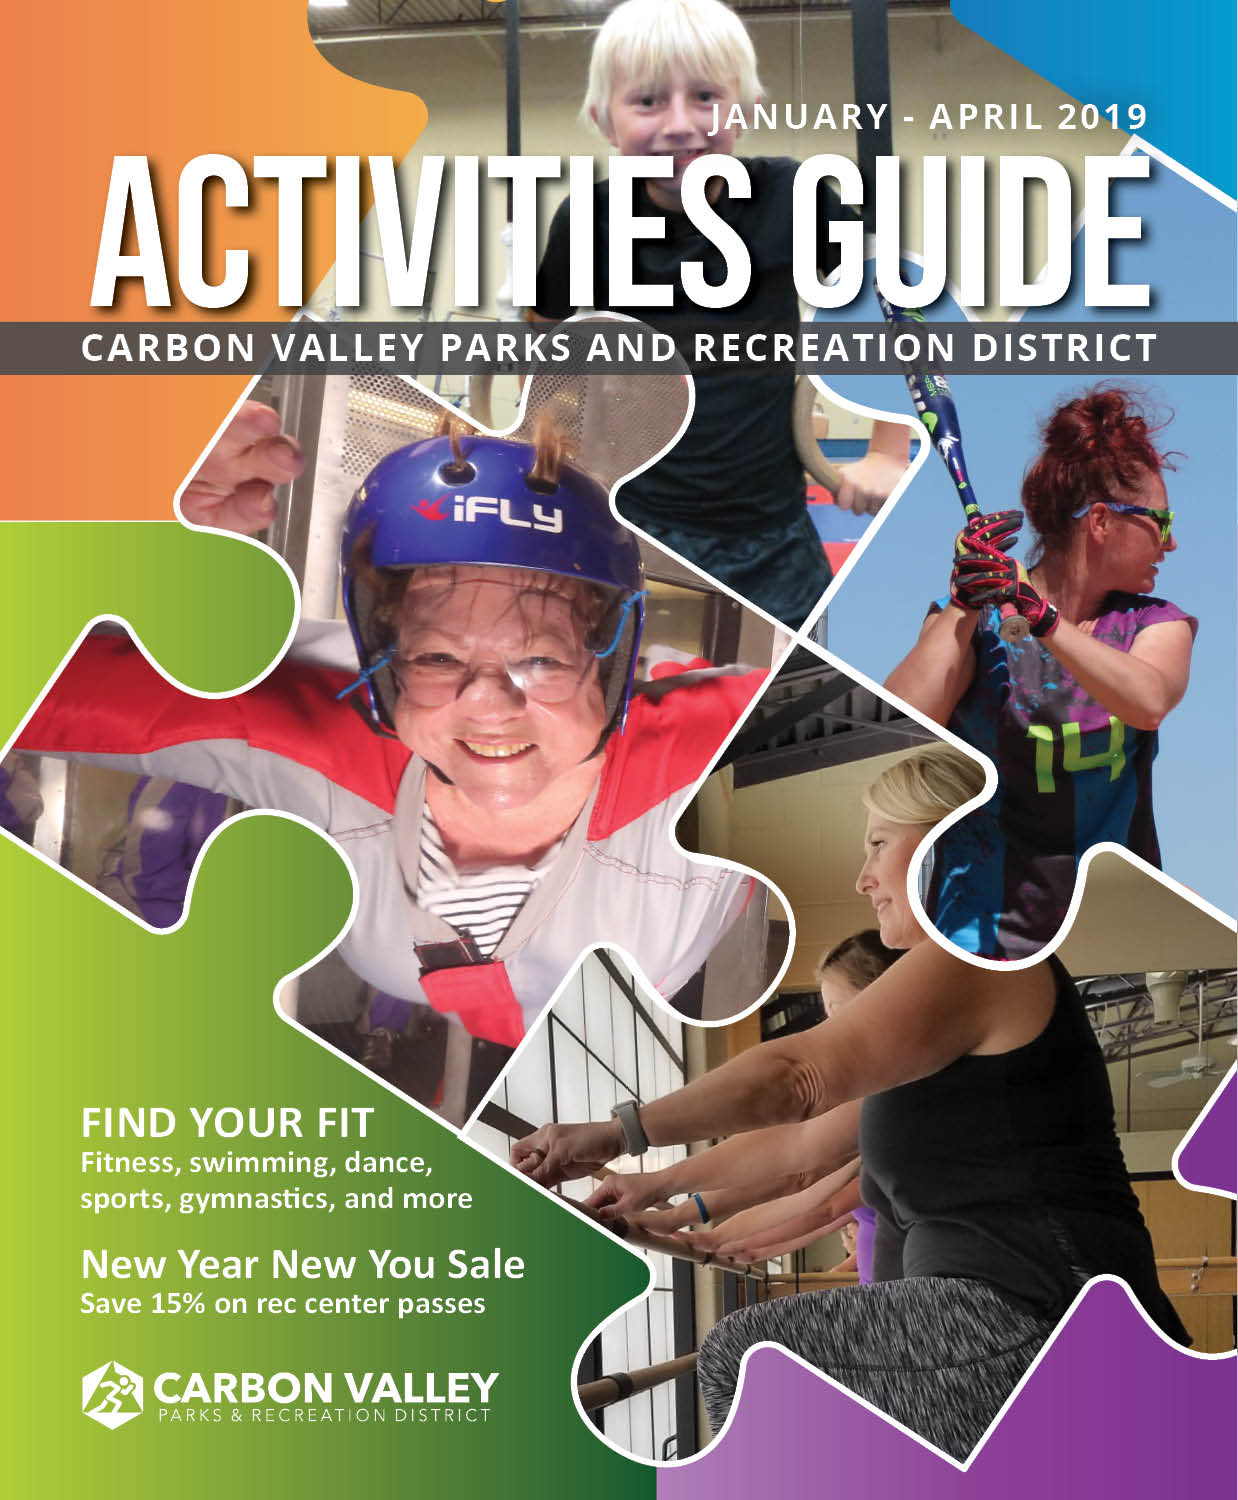 January to April 2019 Activity Guide